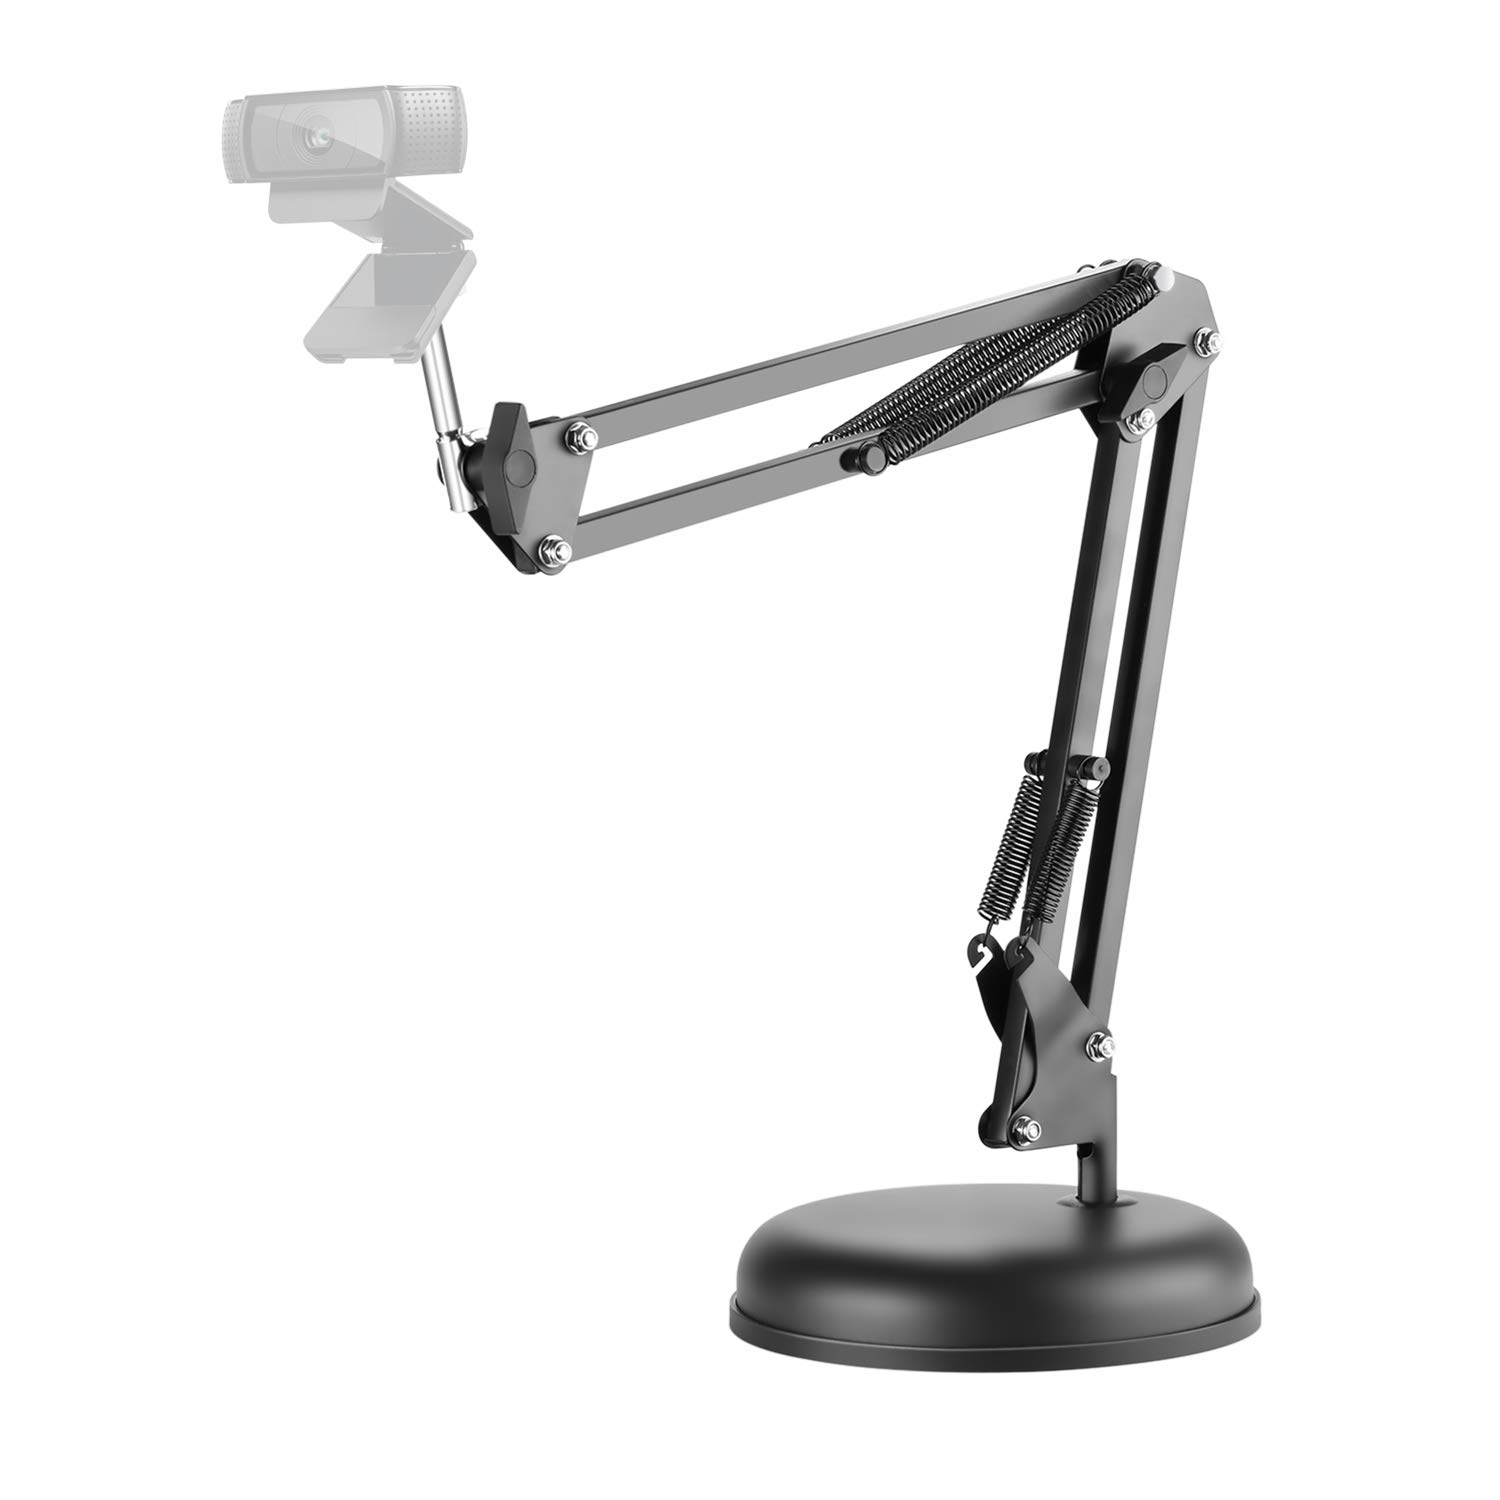 Neewer Adjustable Desktop Suspension Boom Scissor Arm Stand Holder with Base for Logitech Webcam C922 C930e C930 C920 C615